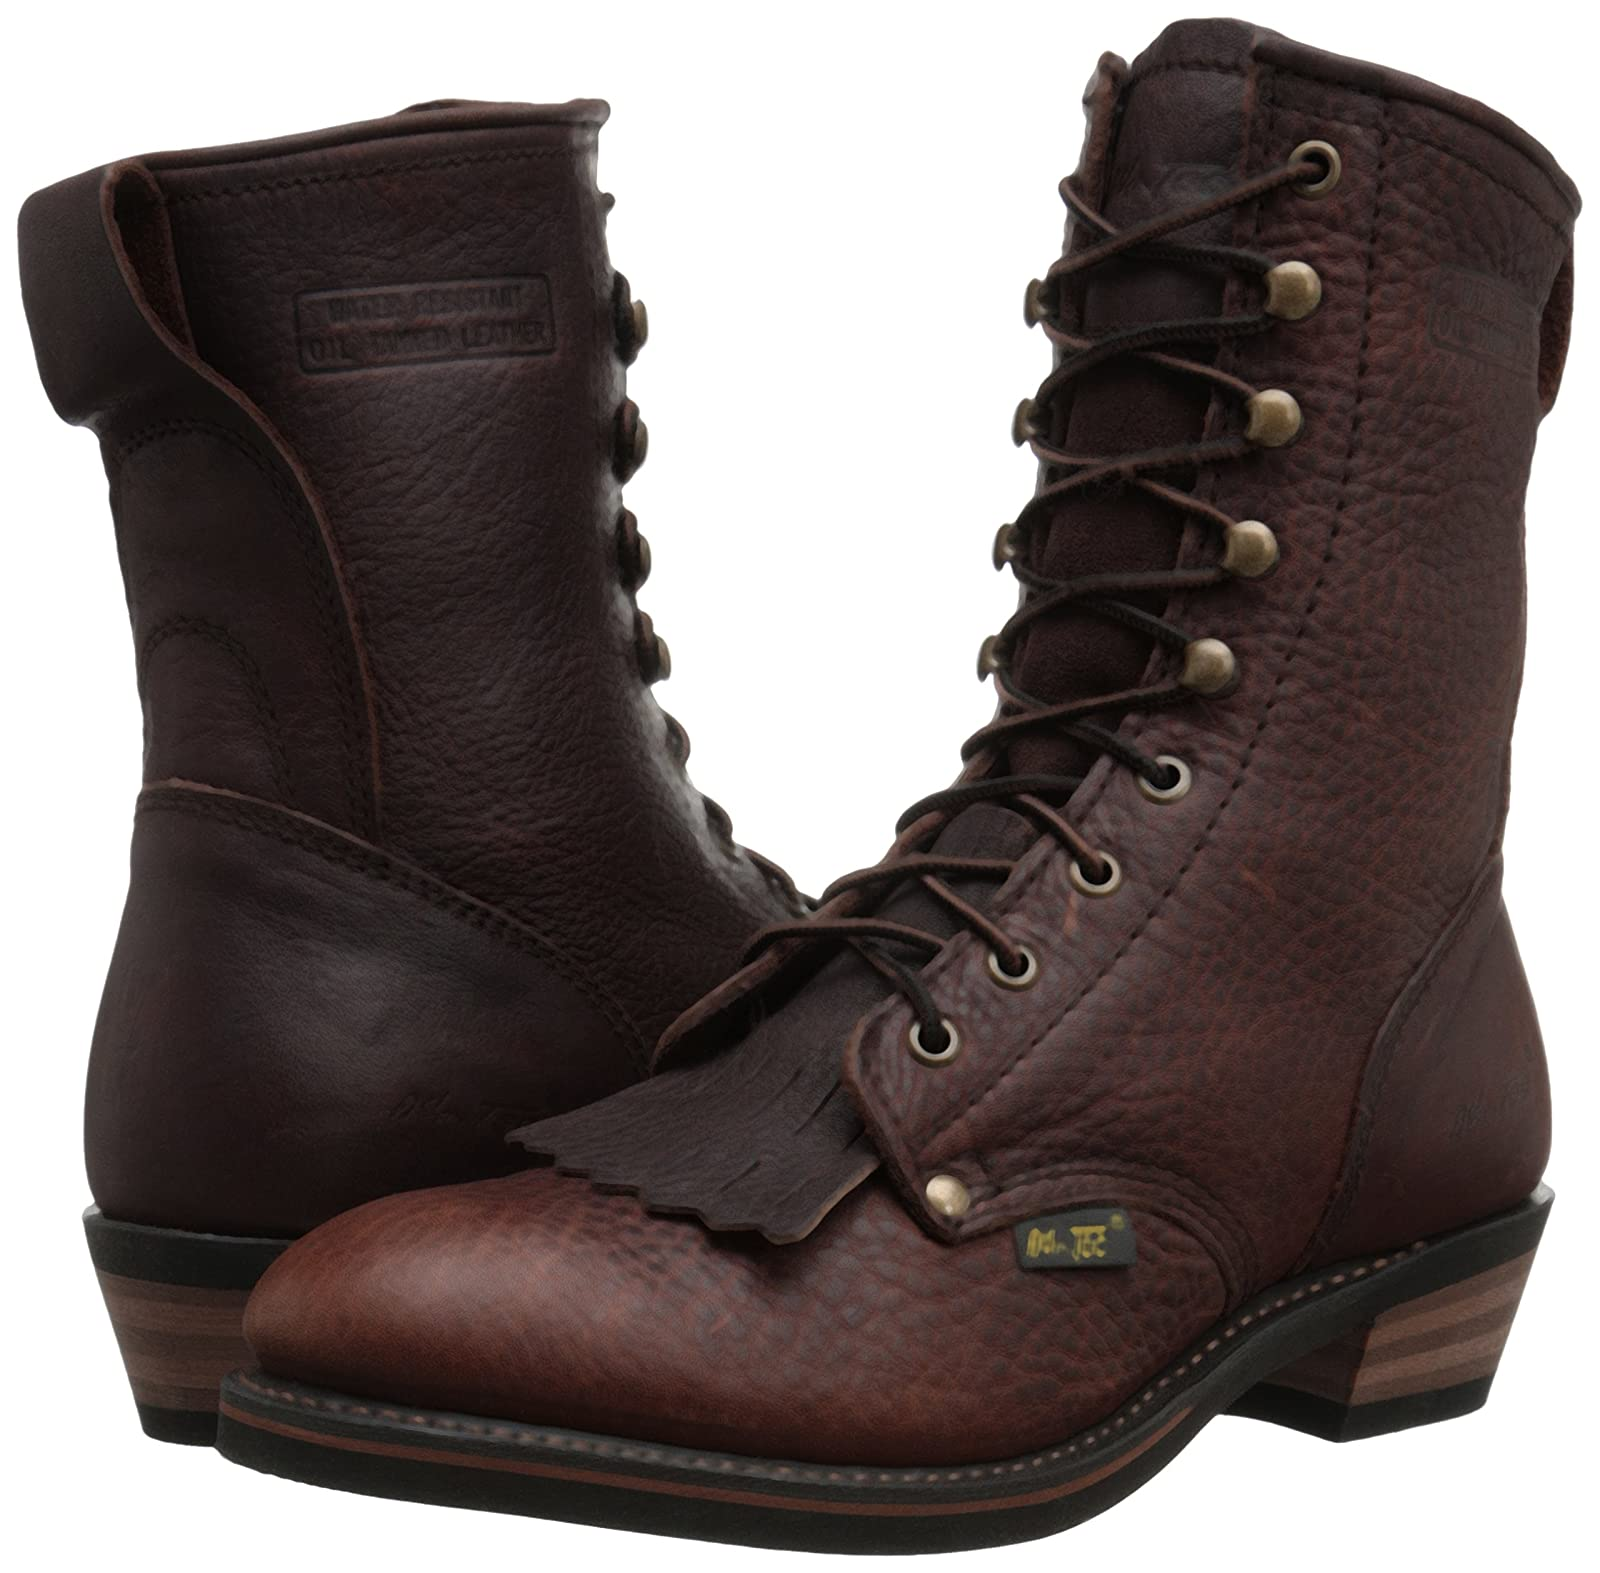 Adtec Men's 9 Inch Packer-M Boot Chestnut 9 M US - 6